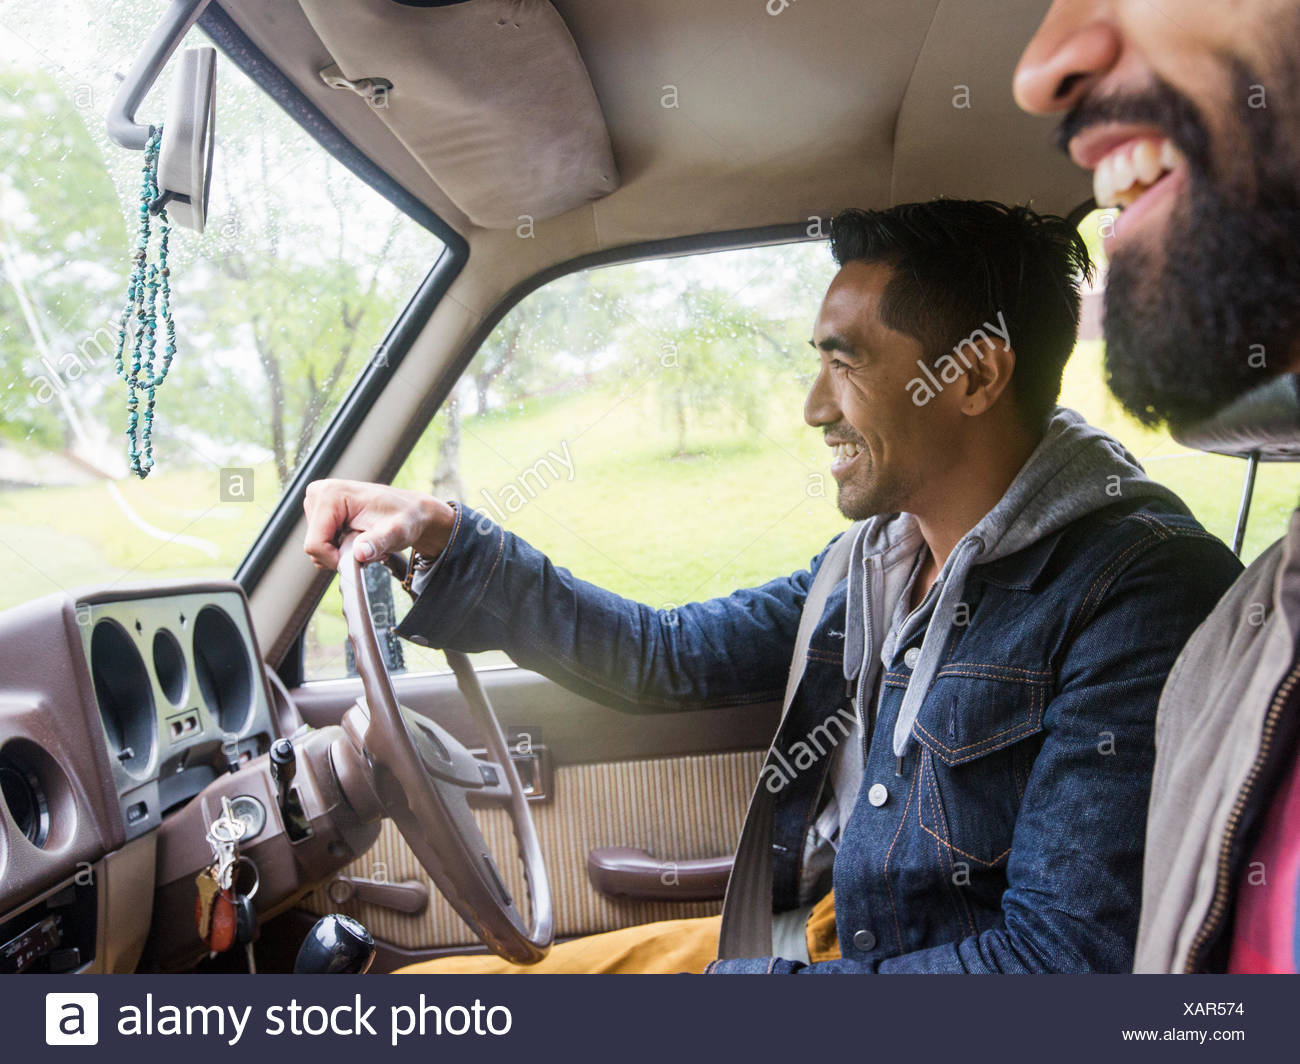 Two young men in a car, driver and passenger, smiling - Stock Image